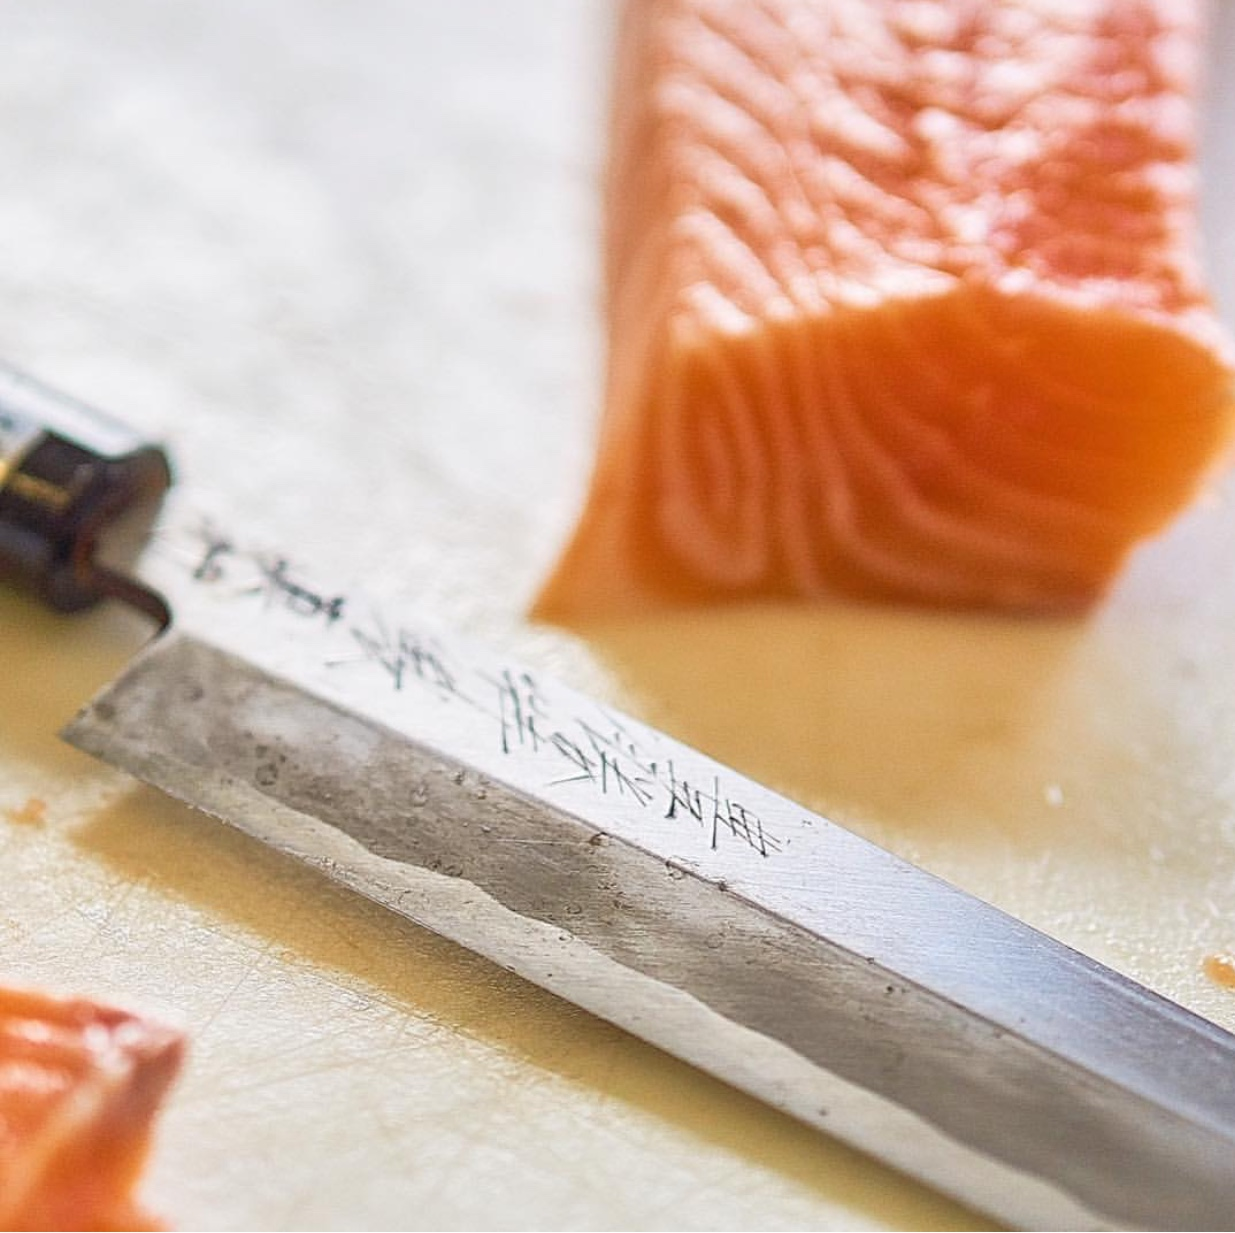 salmon knife.jpg